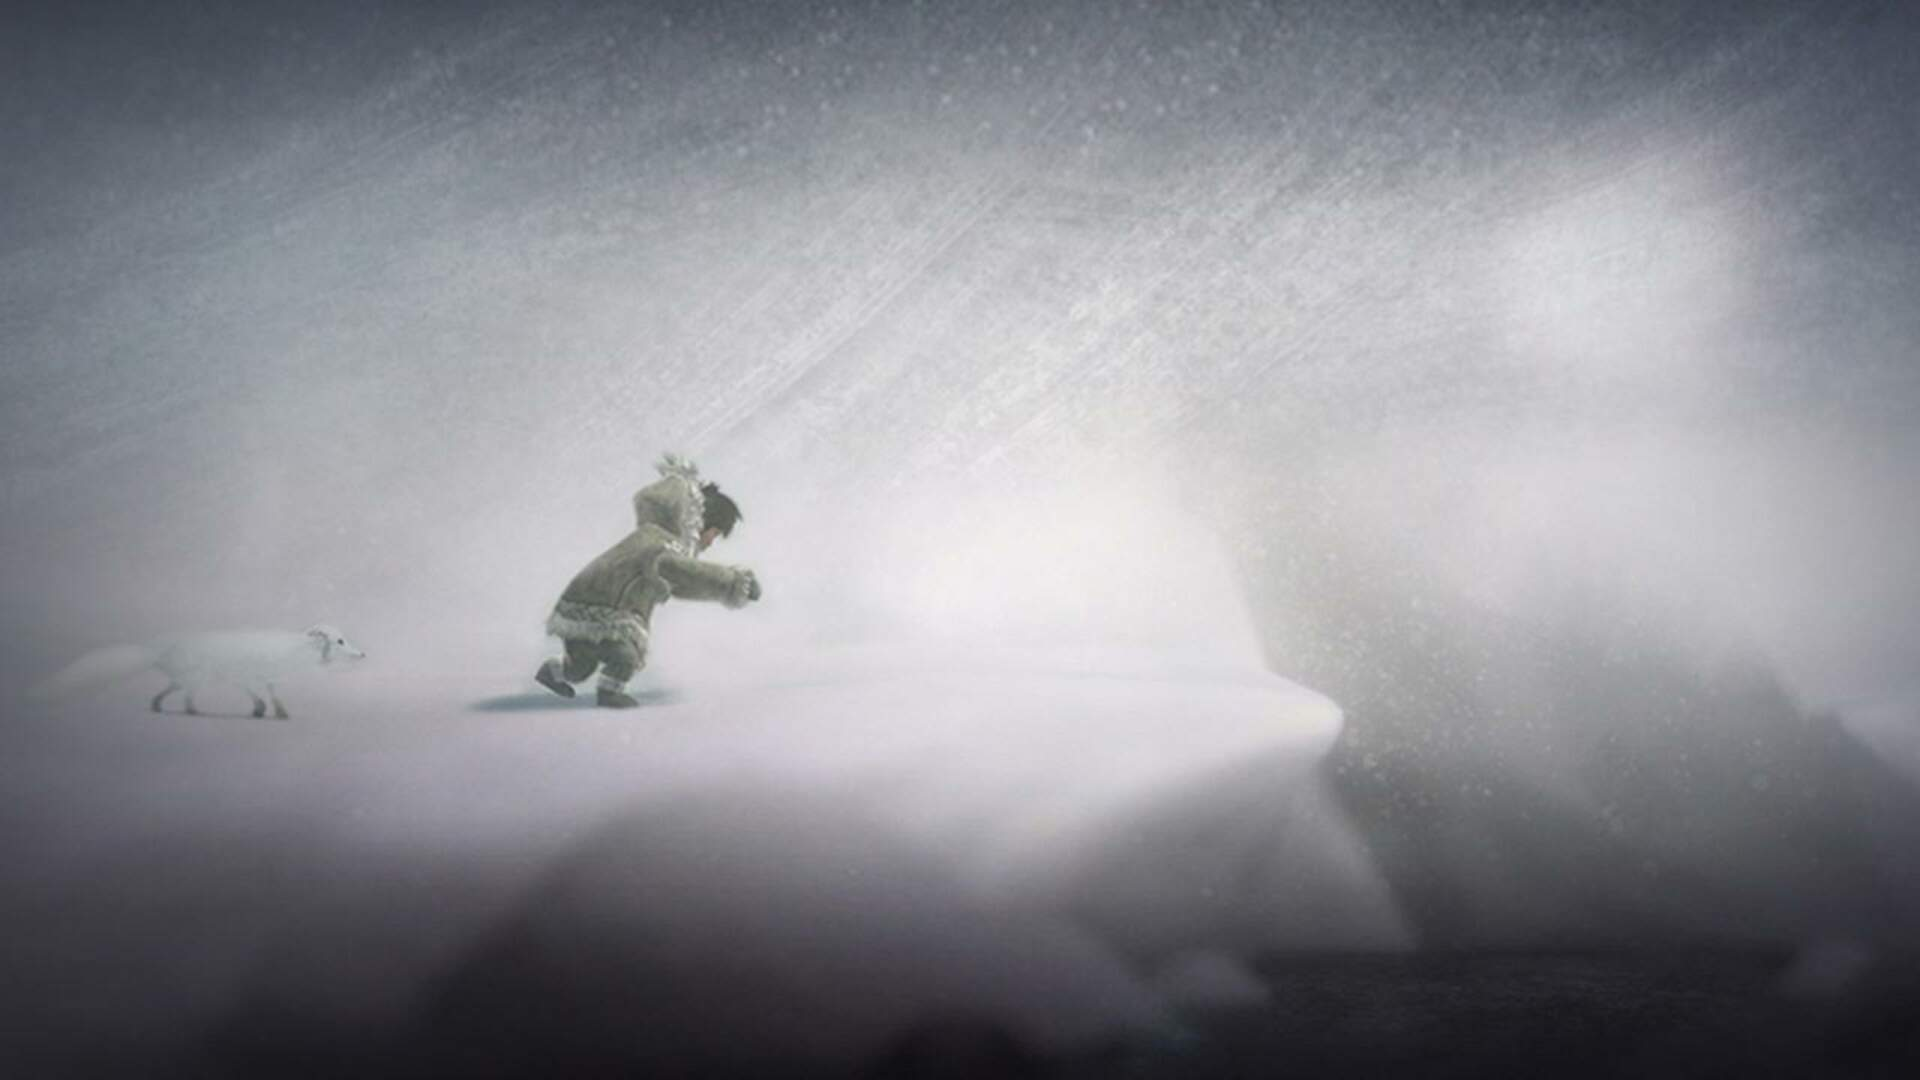 Never Alone PS4 Review: Winter Wonderland